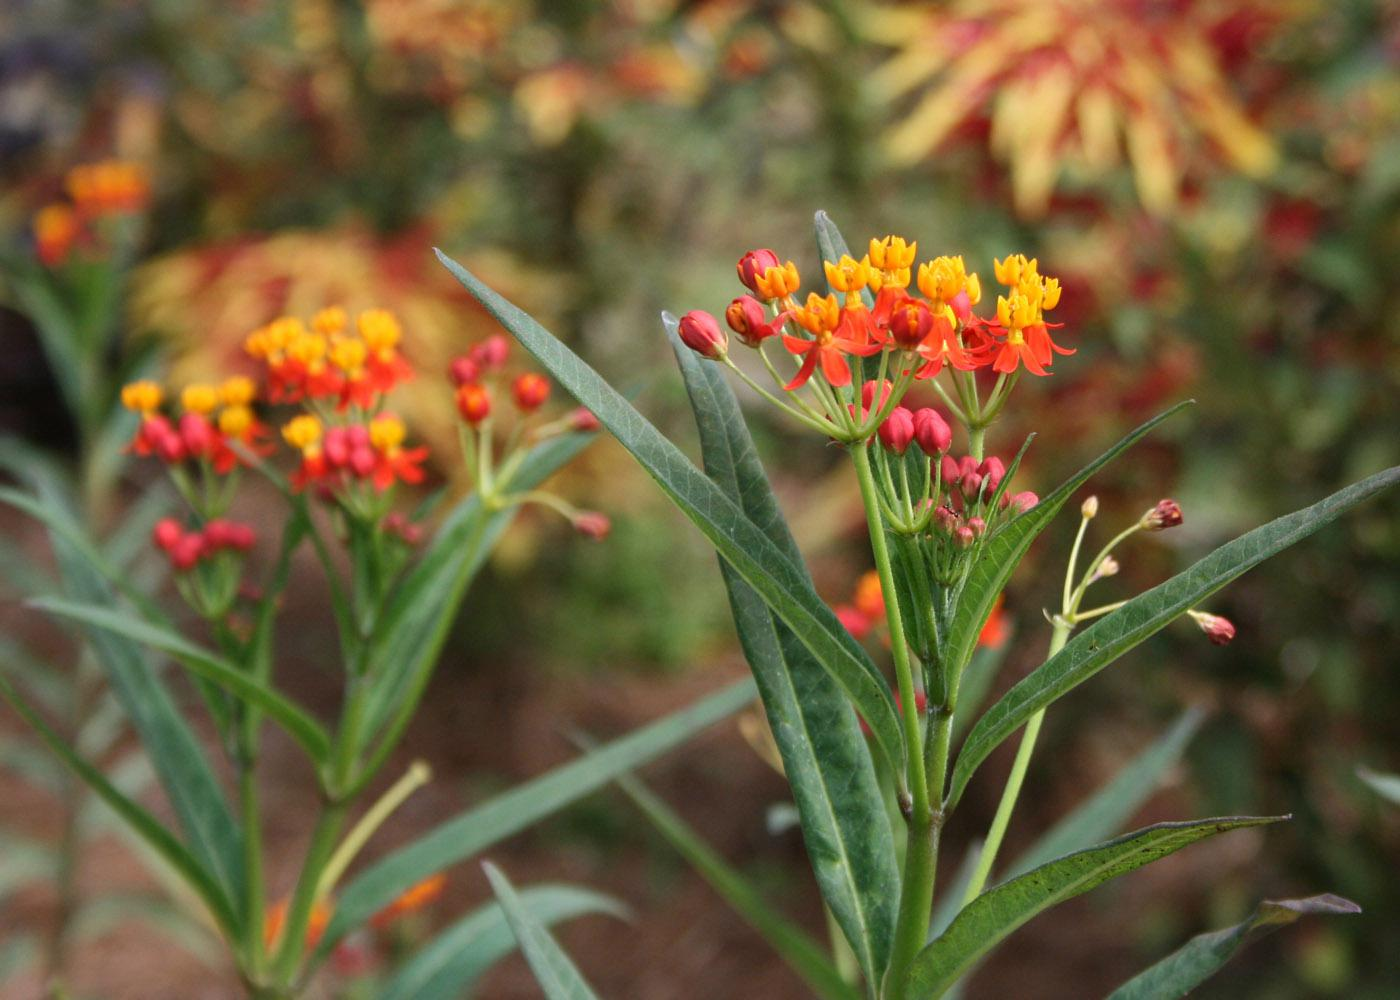 The orange and red flowers of 2012 Mississippi Medallion-winner butterfly weed make it a colorful addition to the landscape.